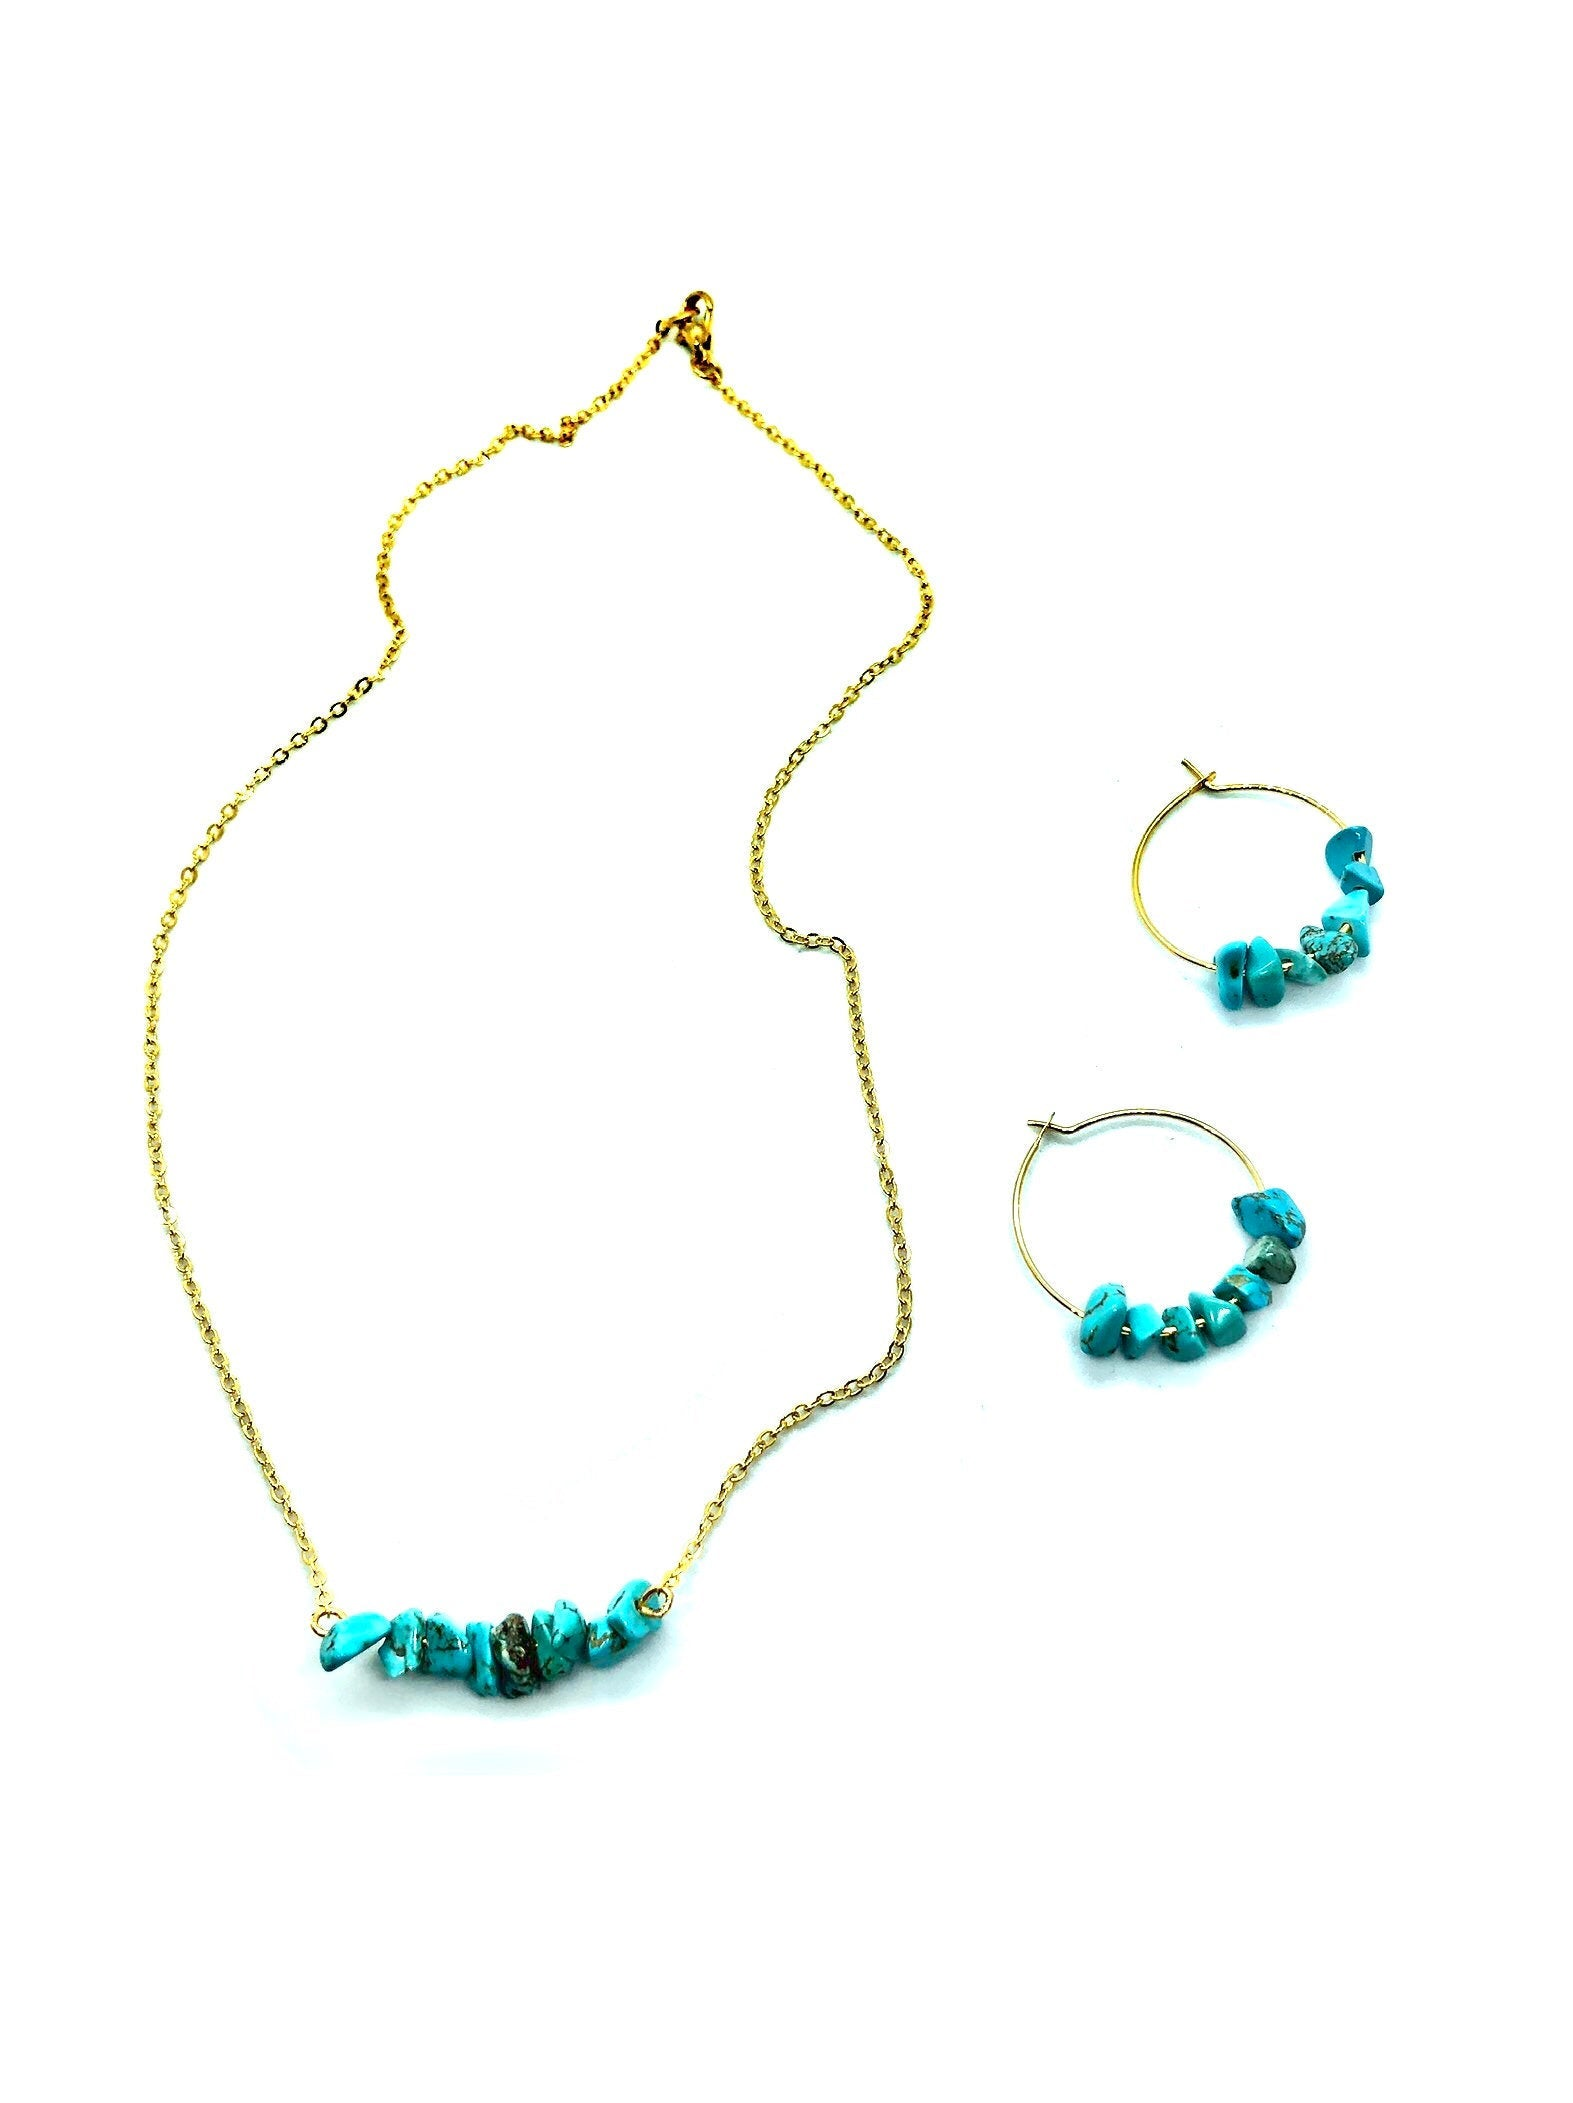 raw turquoise necklace and earring set, gemstone hoop earrings, boho chic jewelry, Mother gift from daughter, gold bar necklace, best seller